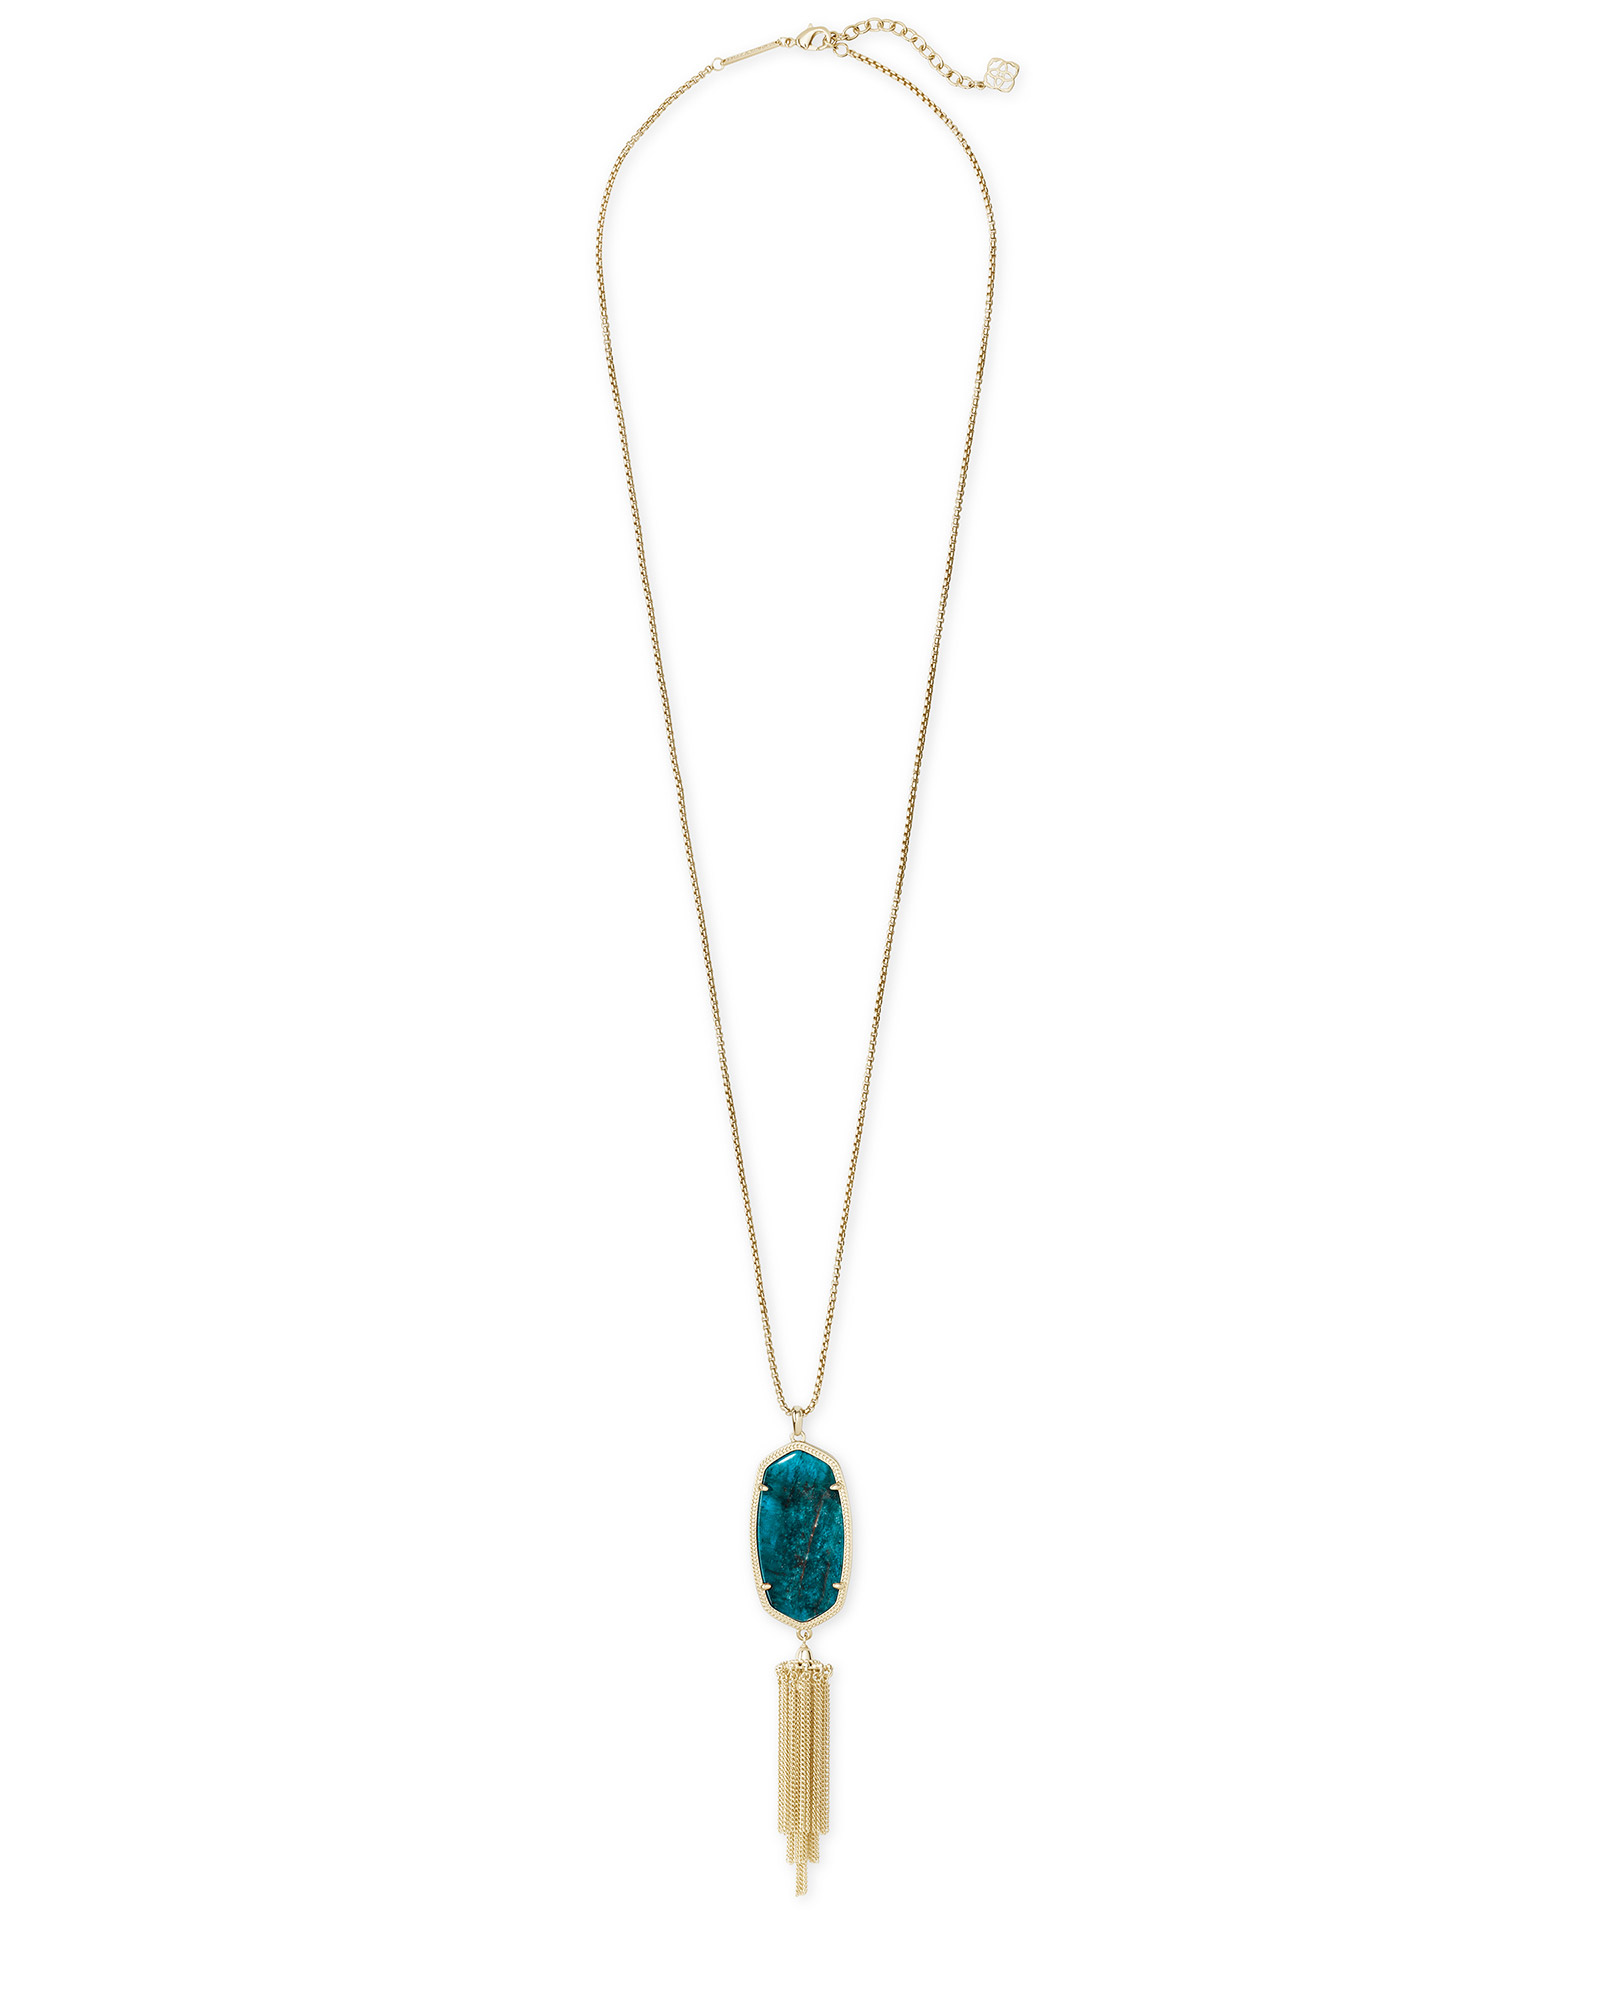 Rayne Gold Long Pendant Necklace in Aqua Apatite